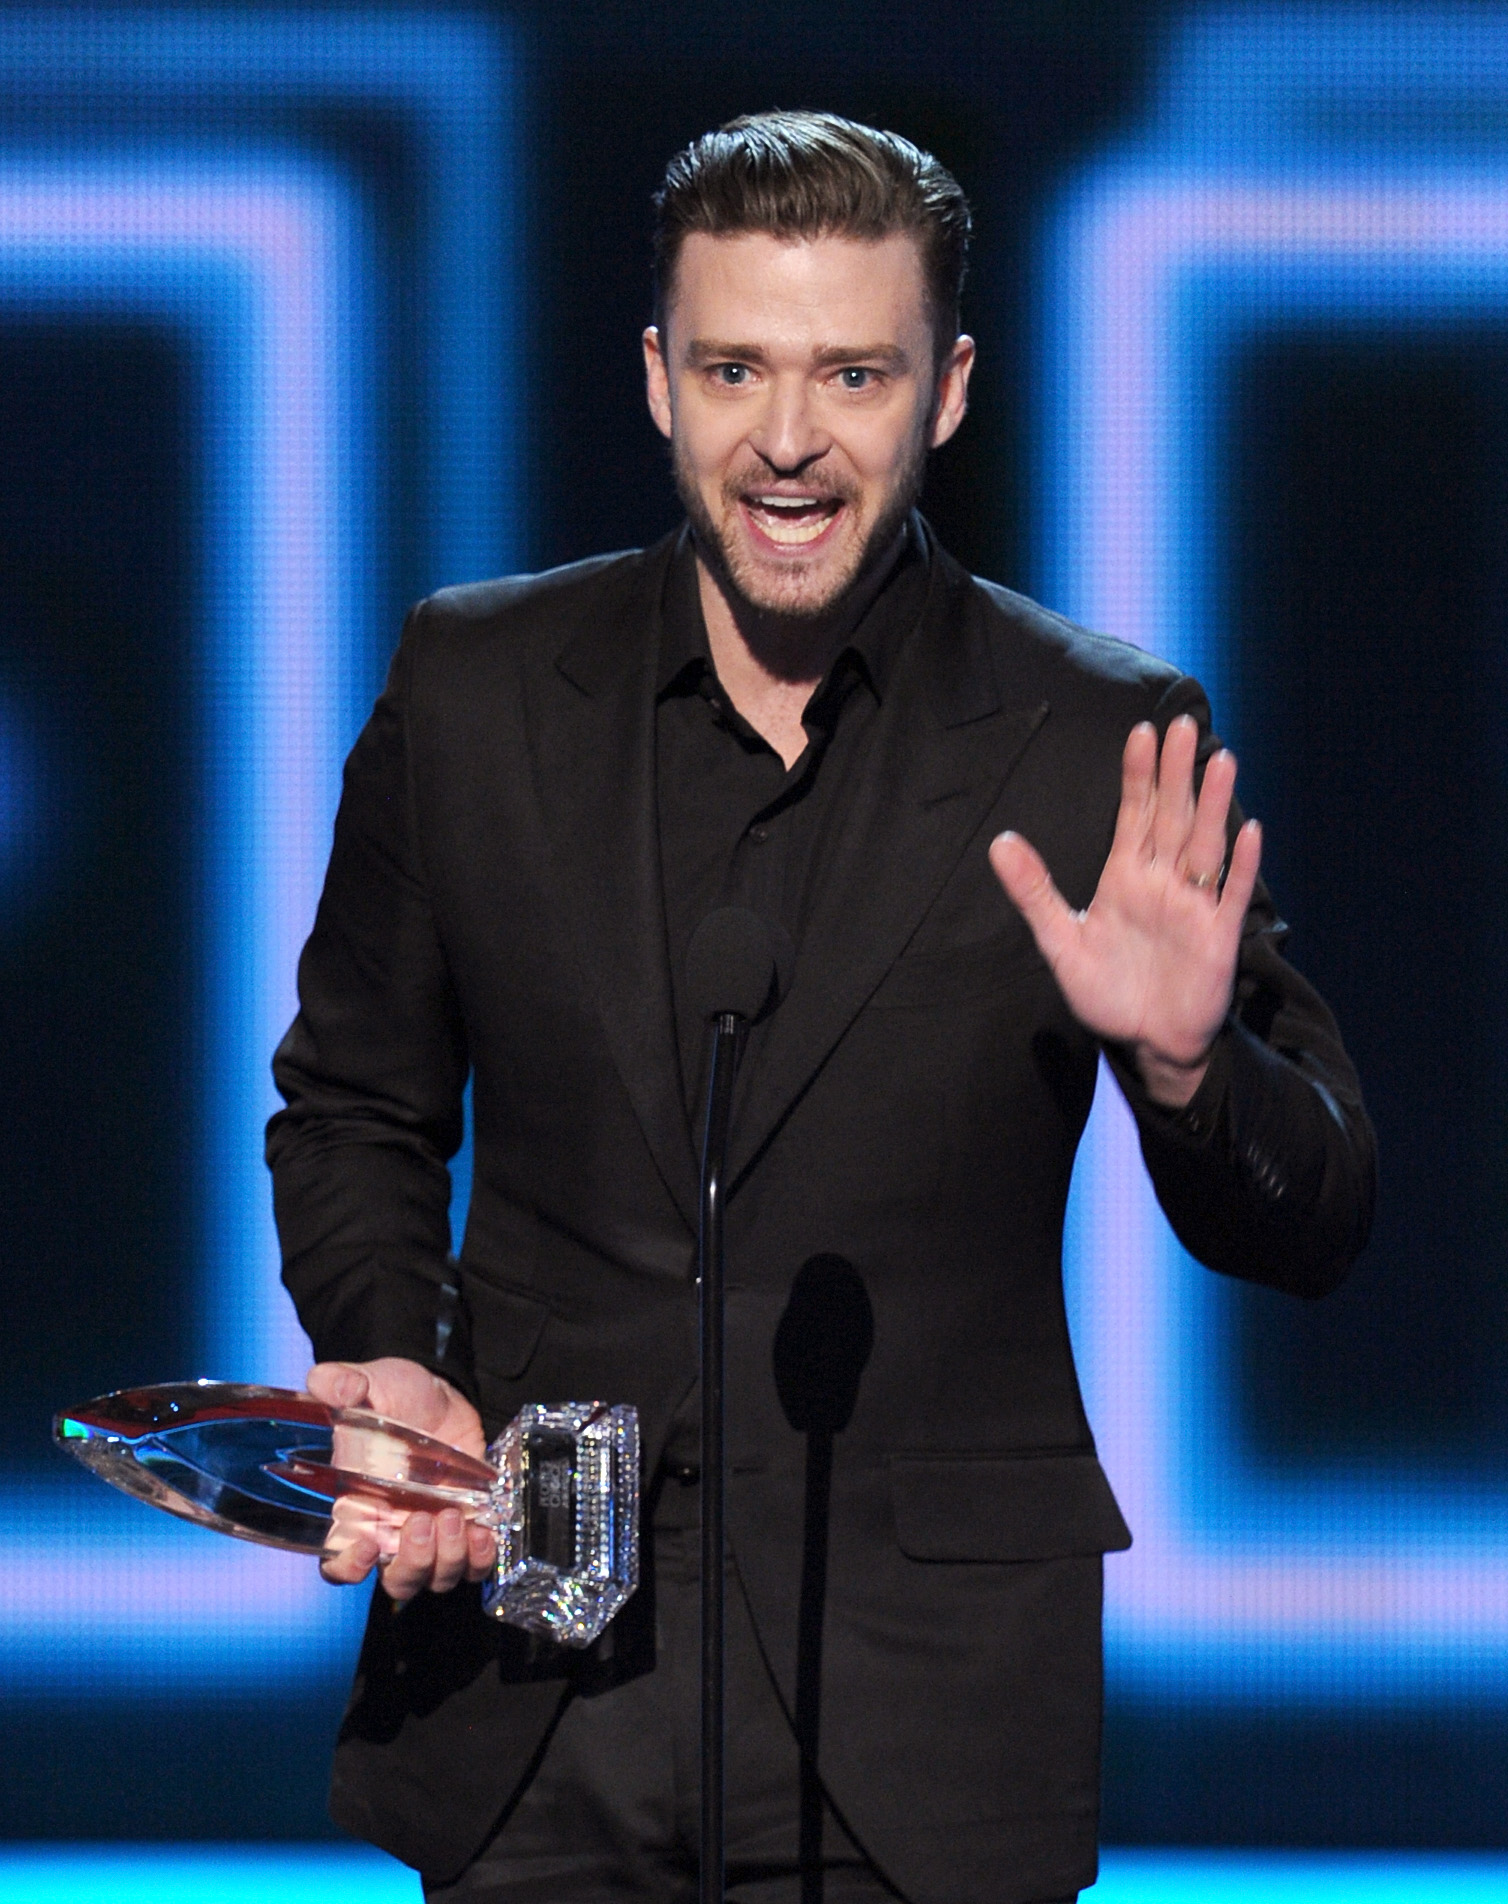 Justin Timberlake took to the stage to accept the award for favorite album.